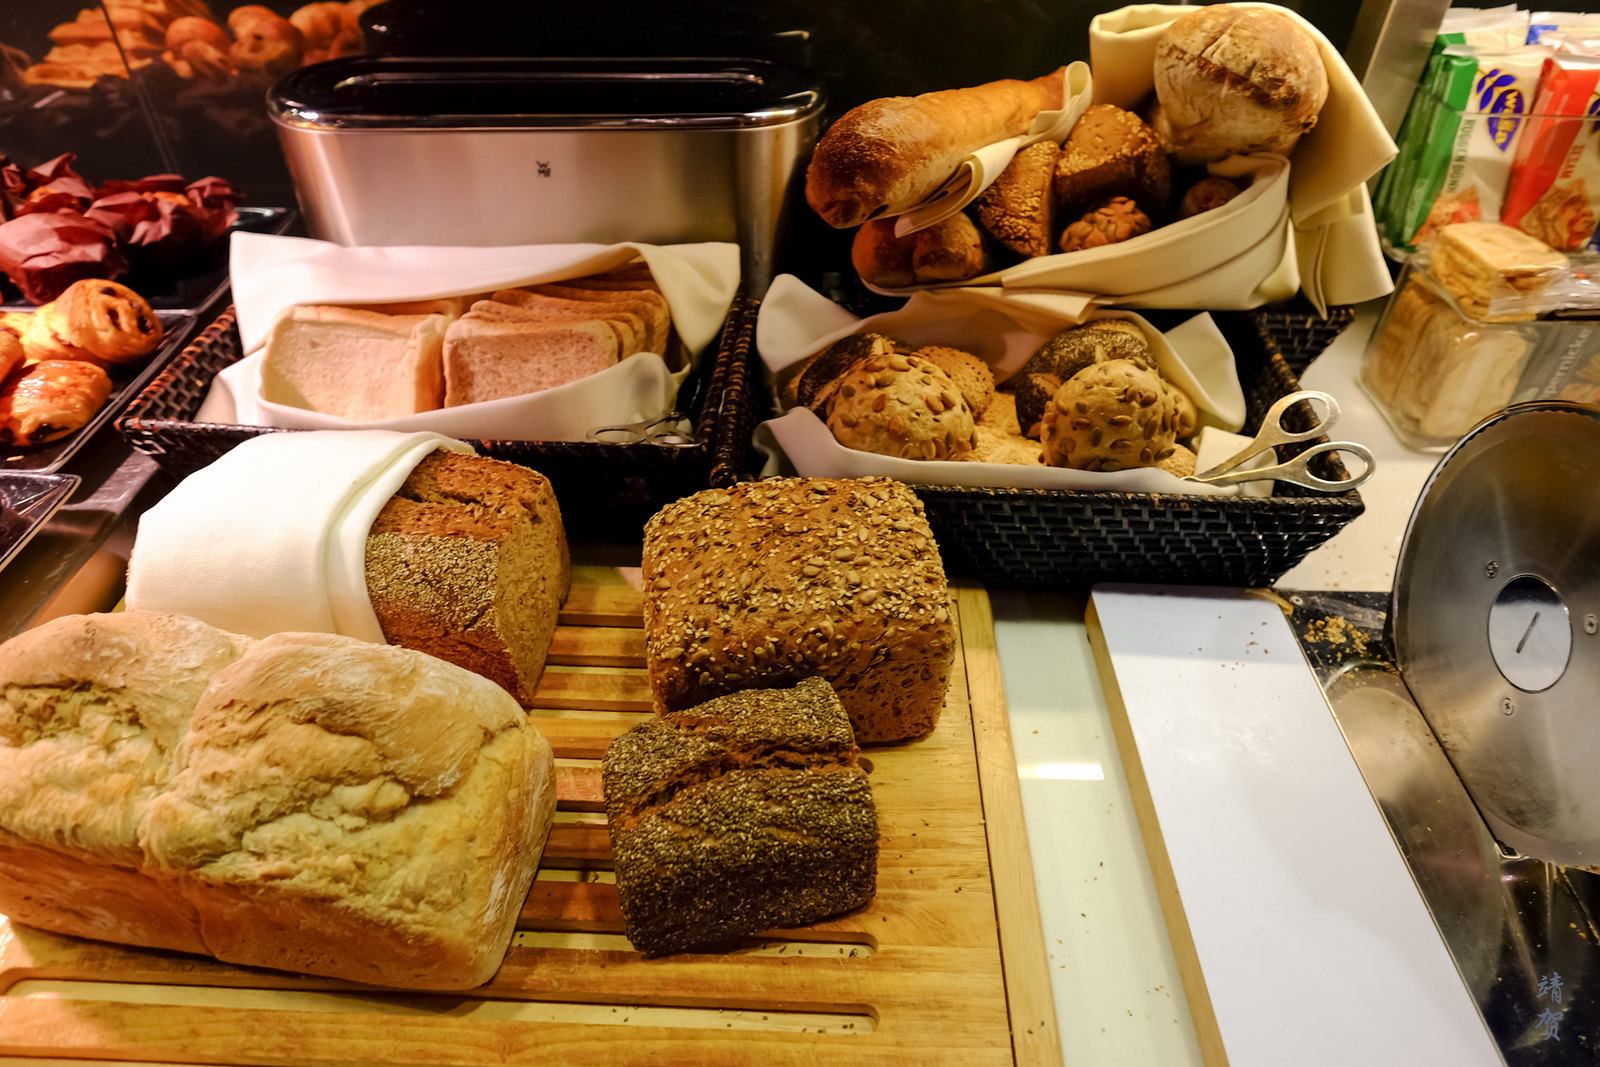 Choices of bread